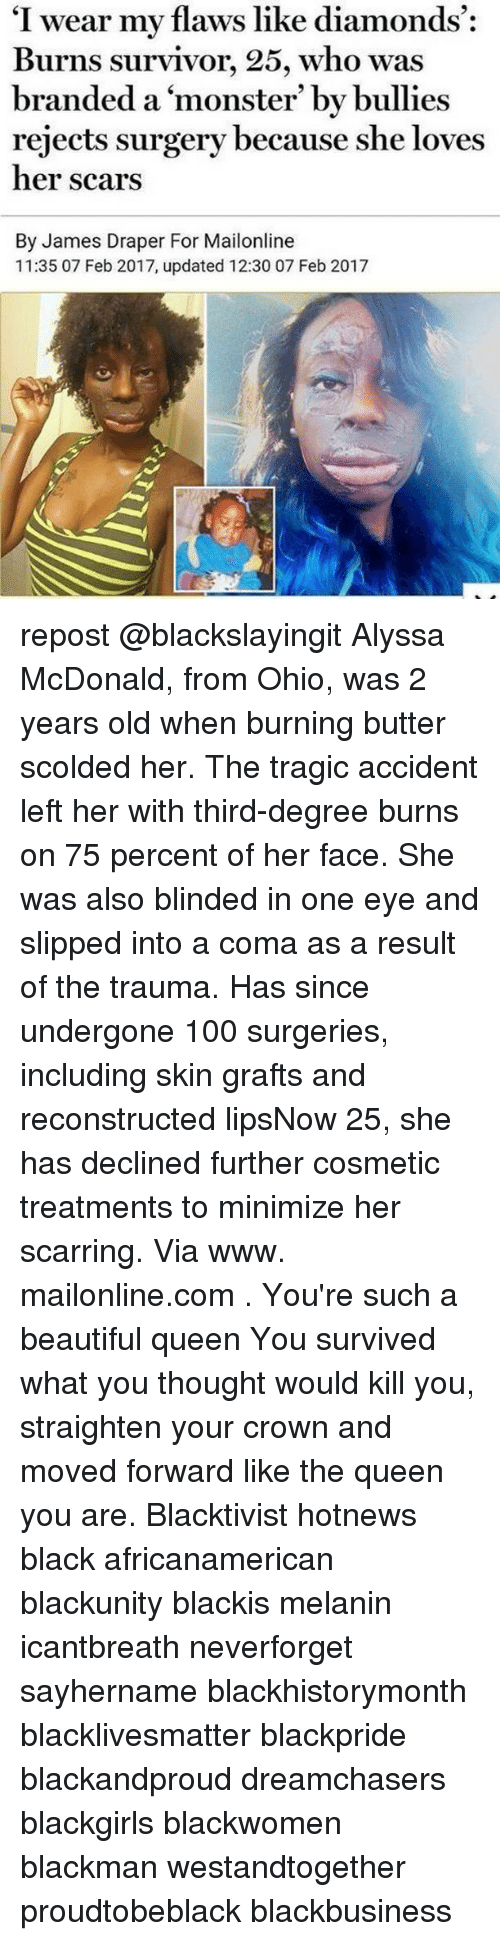 "Beautiful, McDonalds, and Memes: ""I wear my flaws like diamonds  Burns survivor, 25, who was  branded a monster' by bullies  rejects surgery because she loves  her scars  By James Draper For Mailonline  11:35 07 Feb 2017, updated 12:30 07 Feb 2017 repost @blackslayingit Alyssa McDonald, from Ohio, was 2 years old when burning butter scolded her. The tragic accident left her with third-degree burns on 75 percent of her face. She was also blinded in one eye and slipped into a coma as a result of the trauma. Has since undergone 100 surgeries, including skin grafts and reconstructed lipsNow 25, she has declined further cosmetic treatments to minimize her scarring. Via www. mailonline.com . You're such a beautiful queen You survived what you thought would kill you, straighten your crown and moved forward like the queen you are. Blacktivist hotnews black africanamerican blackunity blackis melanin icantbreath neverforget sayhername blackhistorymonth blacklivesmatter blackpride blackandproud dreamchasers blackgirls blackwomen blackman westandtogether proudtobeblack blackbusiness"